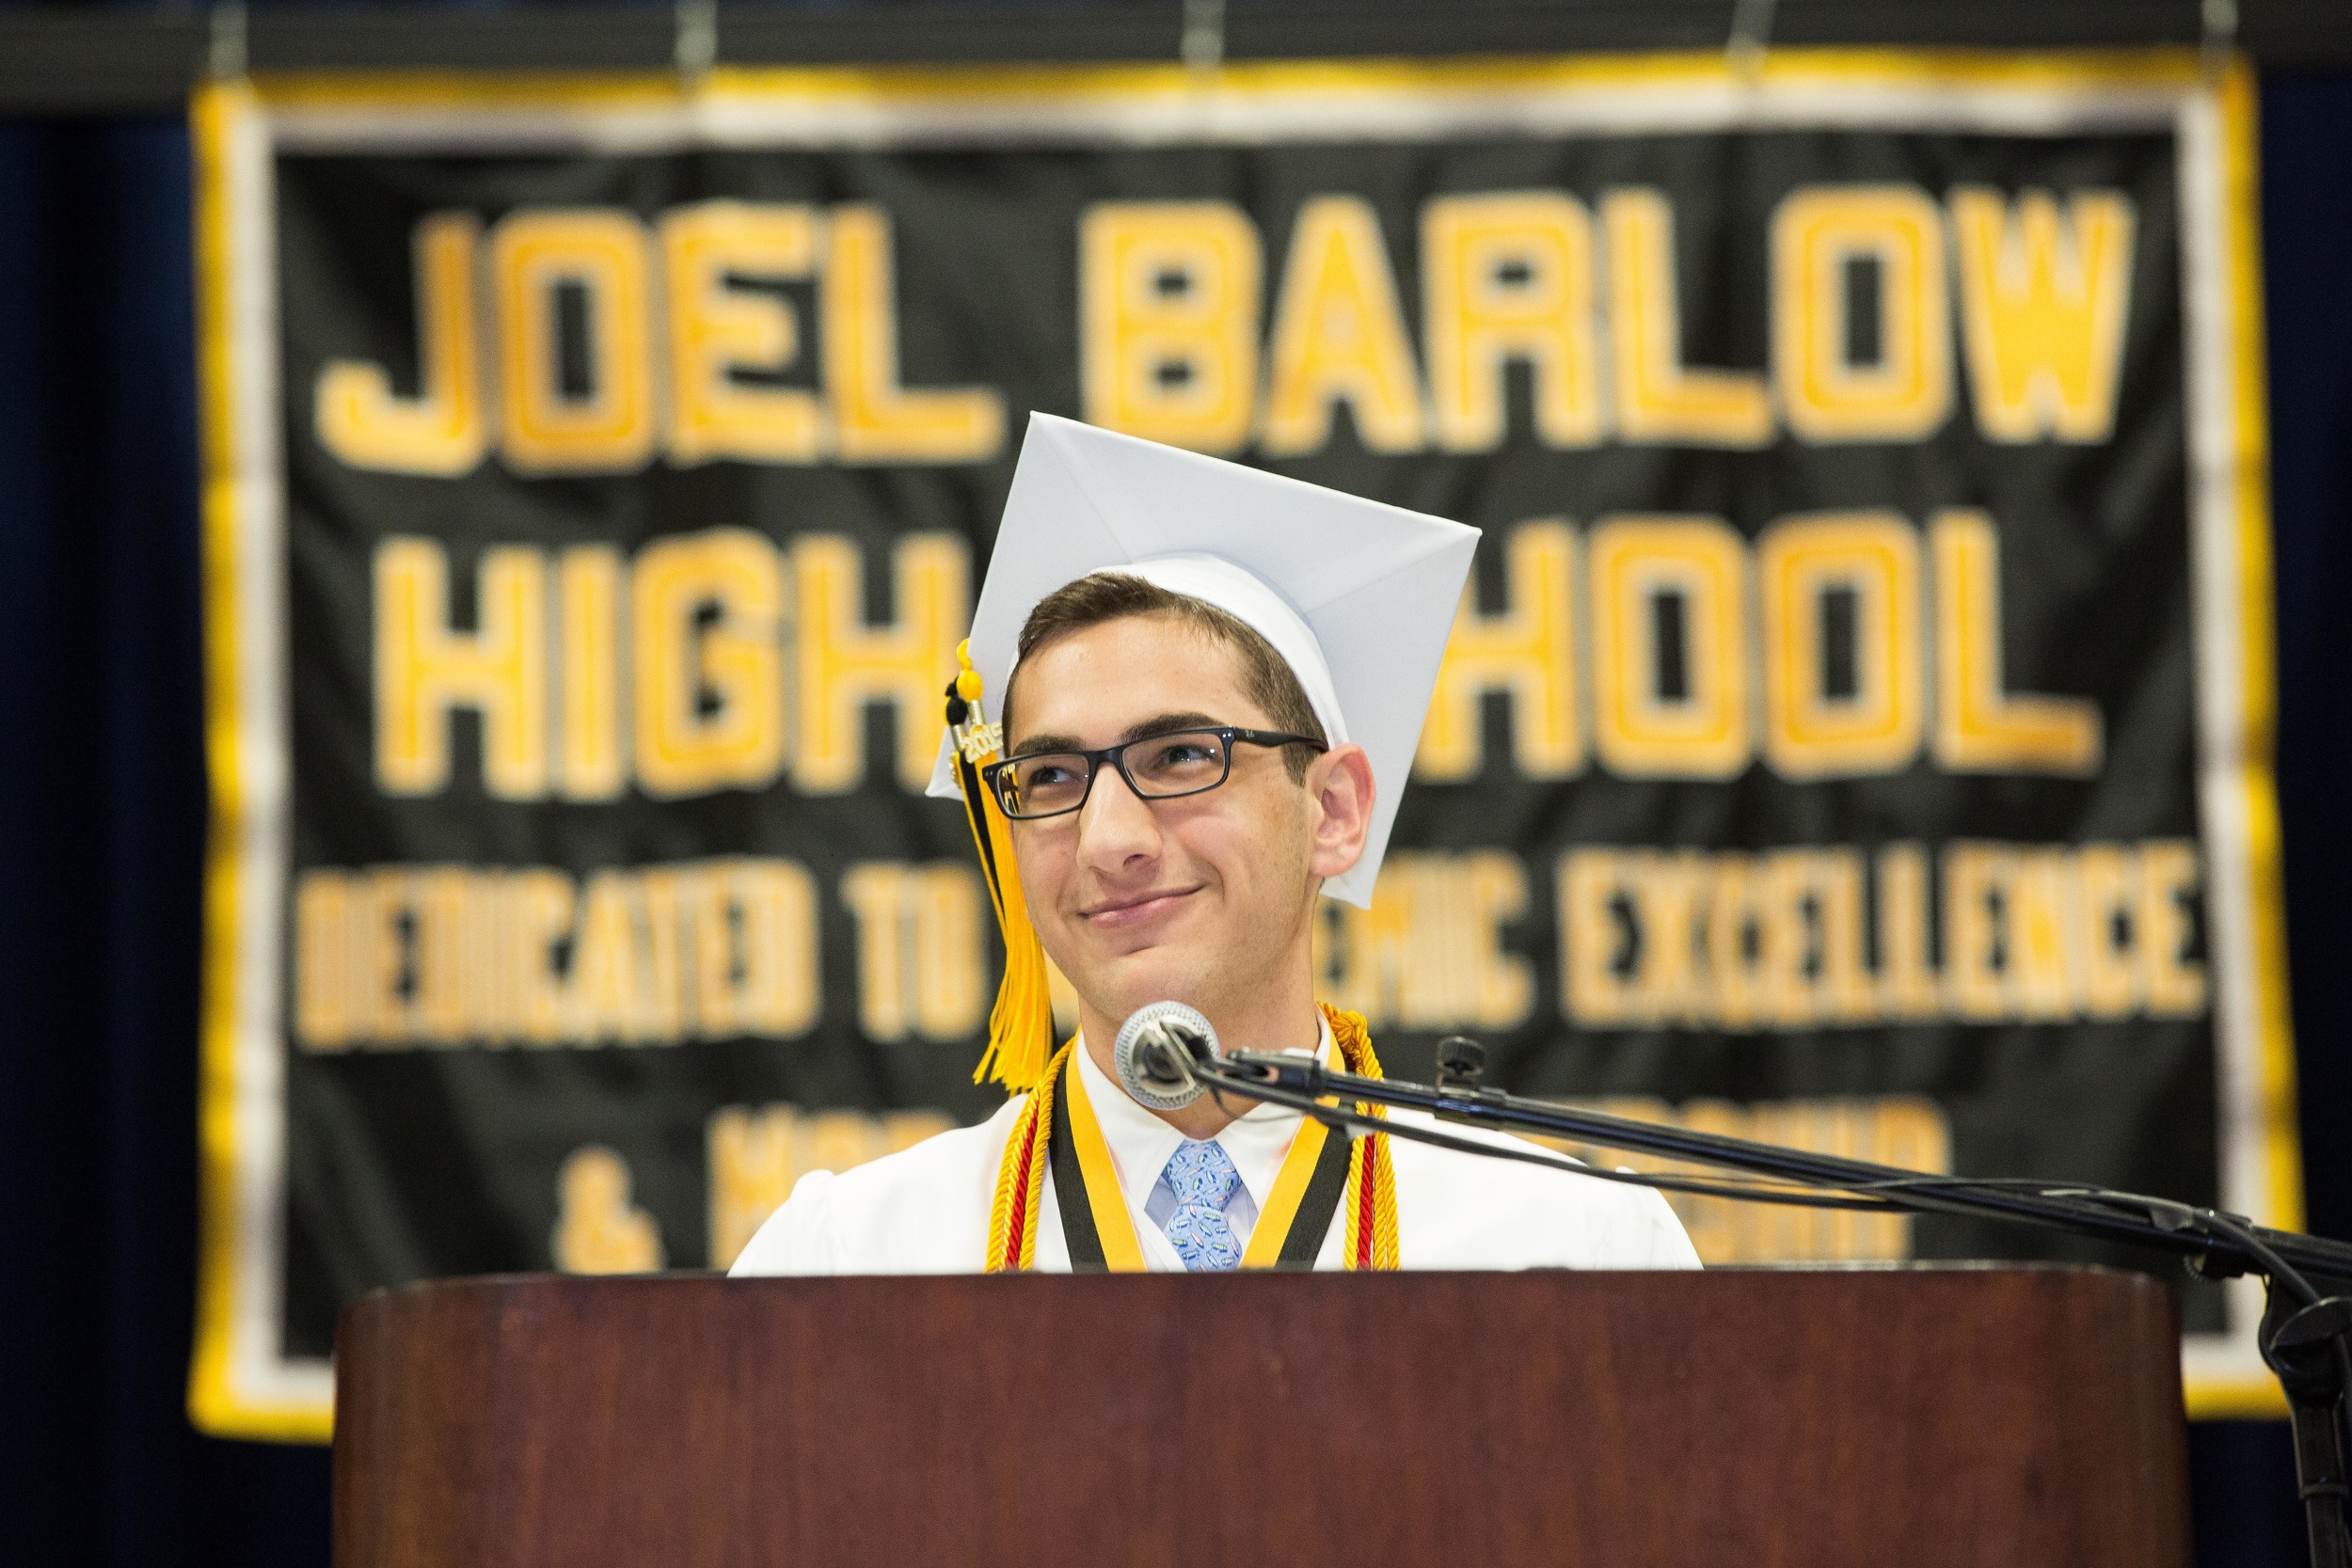 Joel Barlow High School's valedictorian.